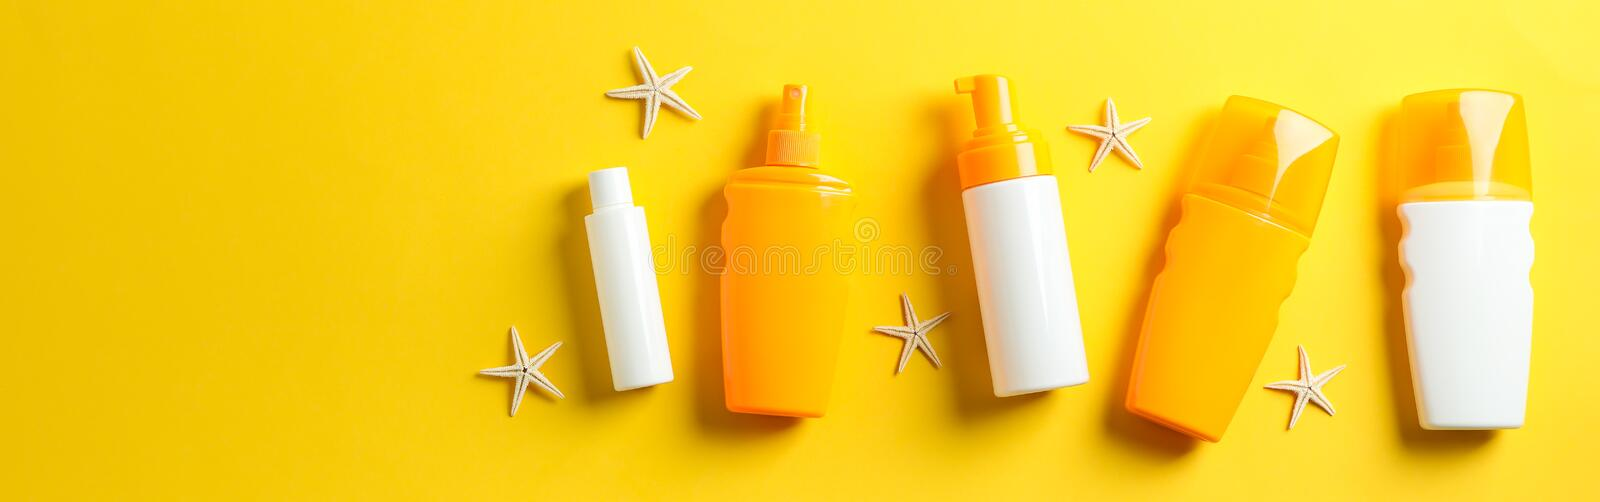 Flat lay composition with sunscreen sprays and starfishes on color background, space for text stock photo